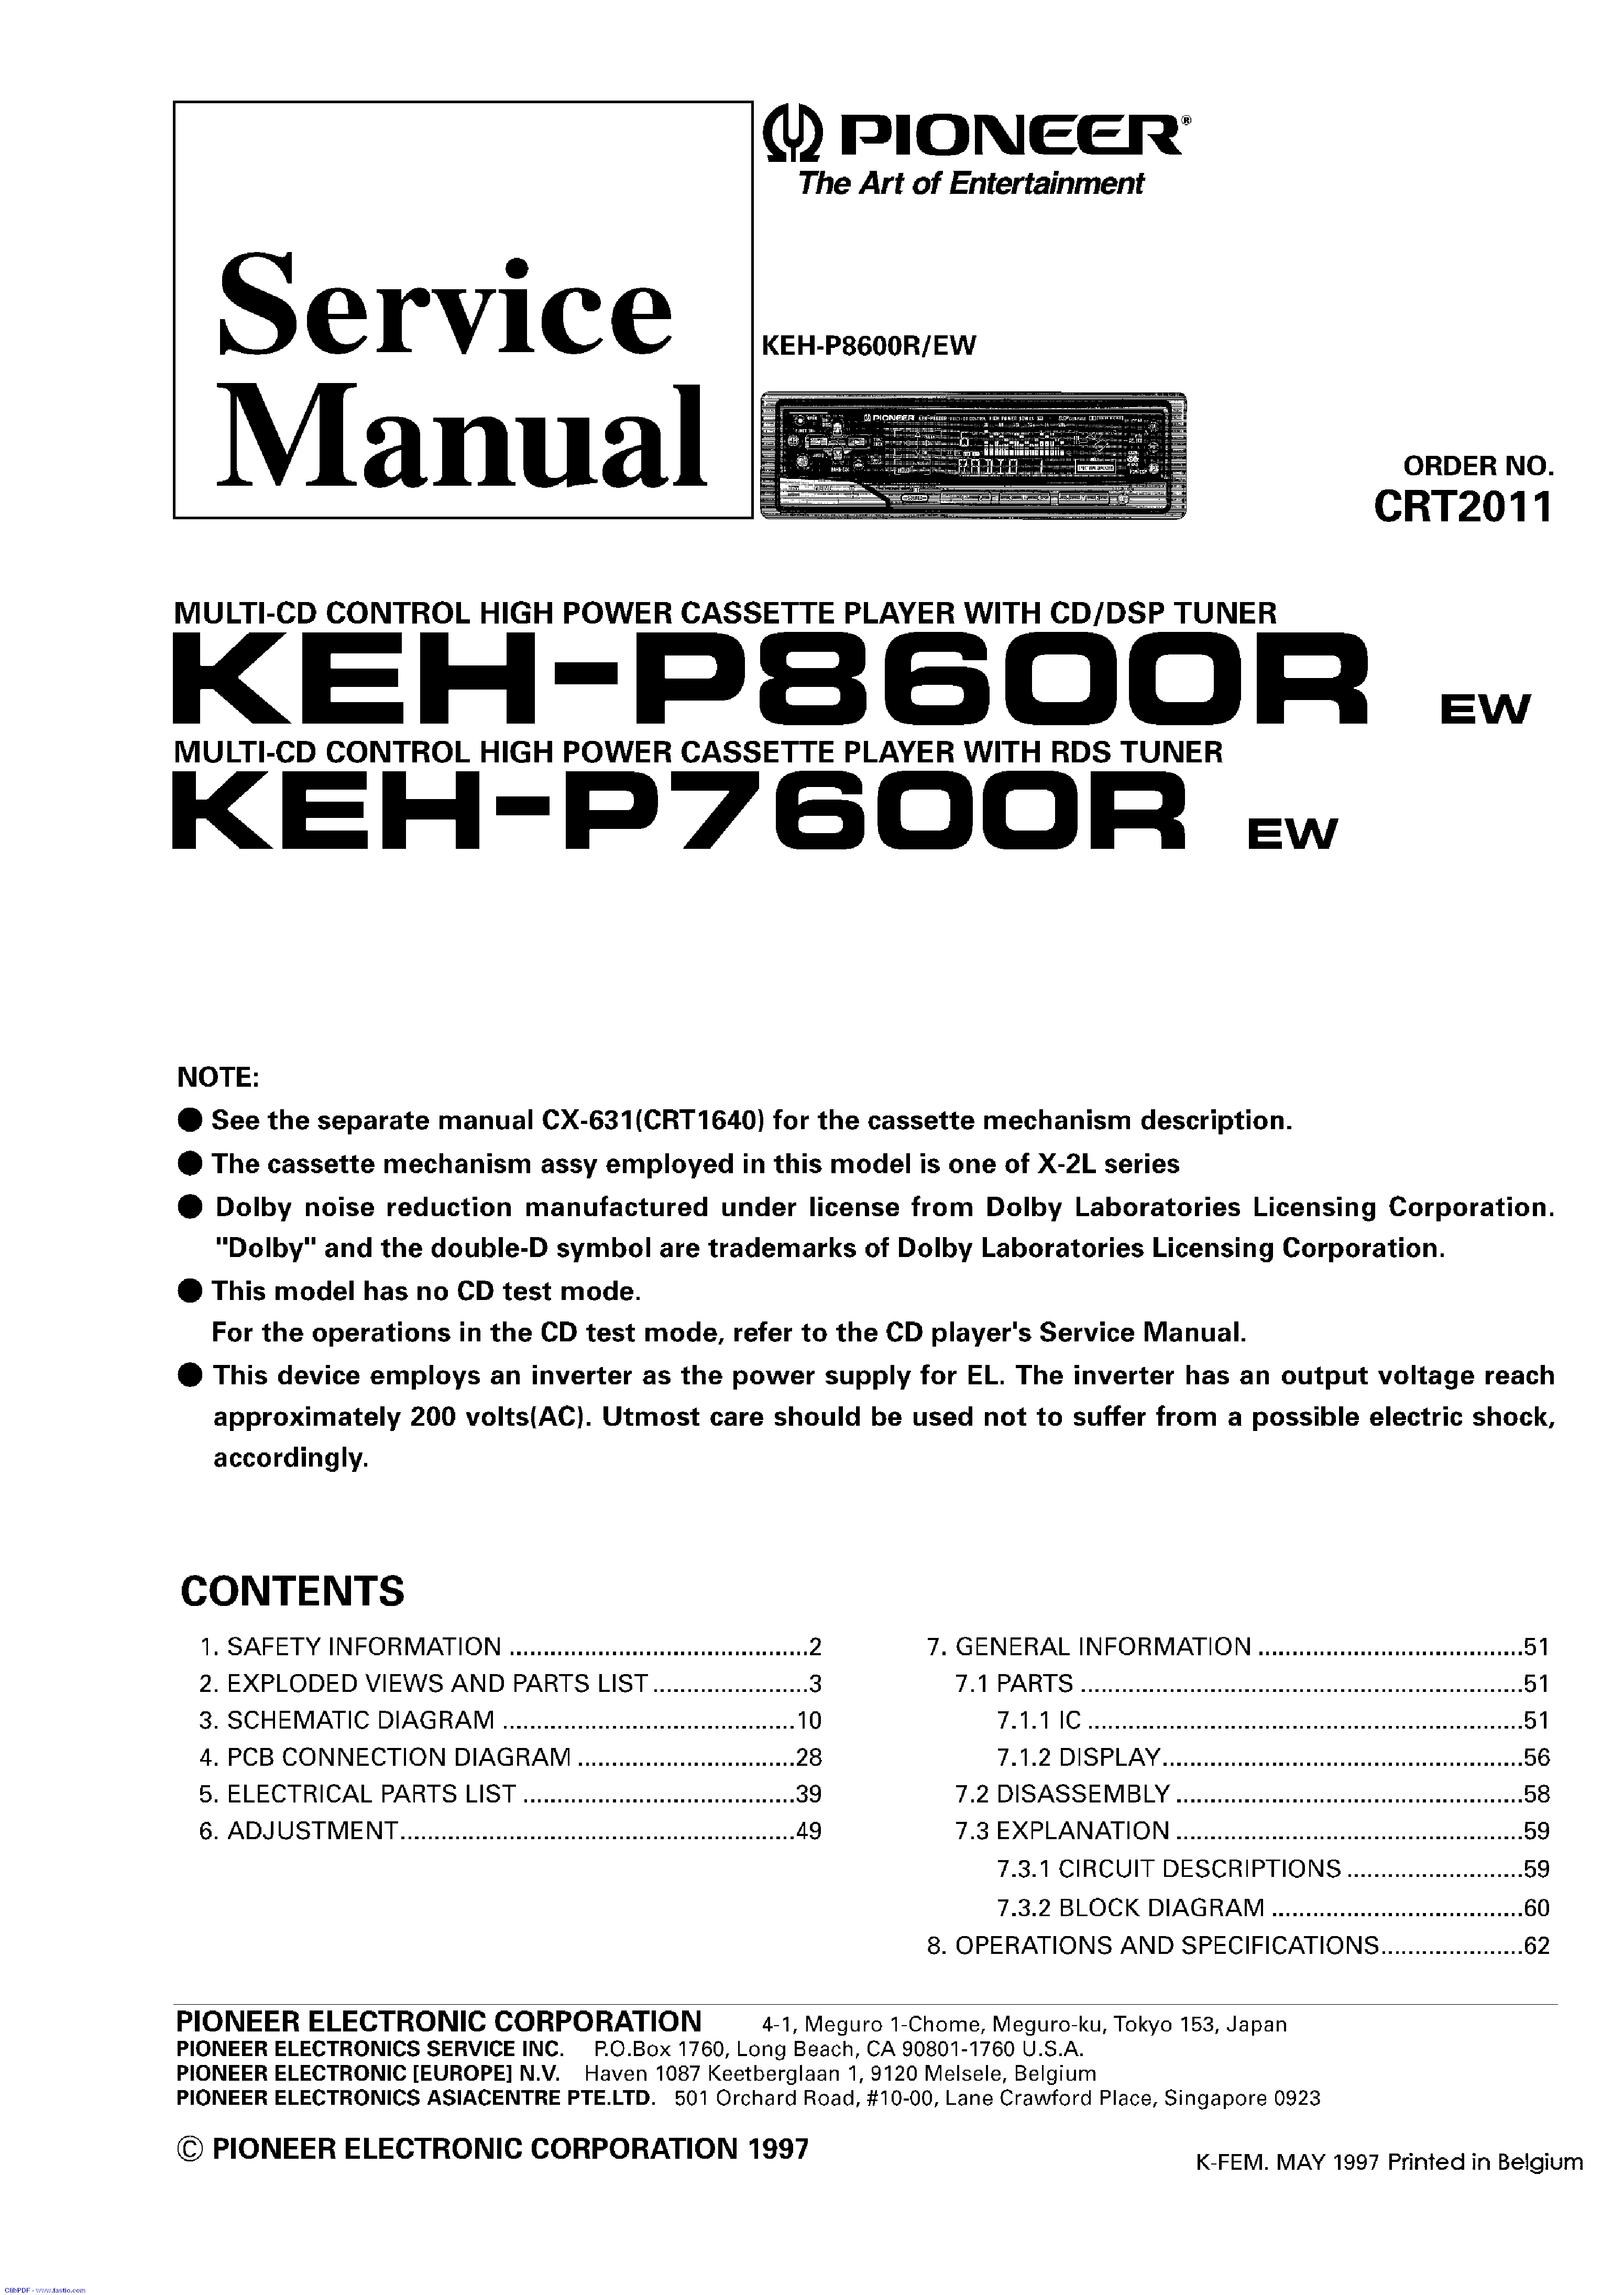 pioneer keh p8600r 7600r service manual free schematics eeprom repair info for